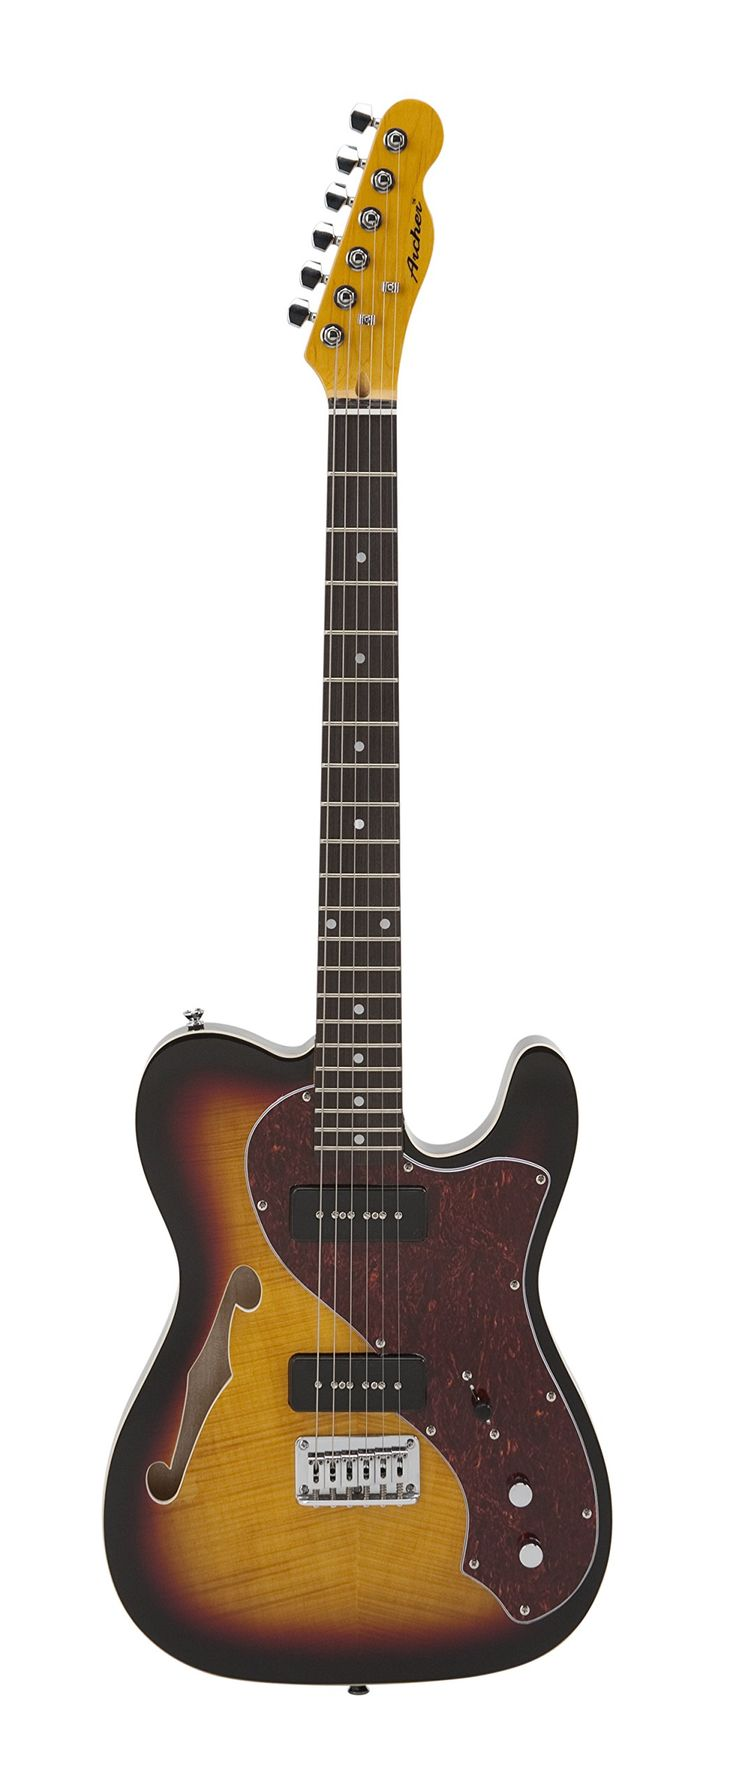 """Archer TT10SB Designed Series Thinline Electric Guitar. • Grover Locking Tuners. • Rosewood Fret board. • Dot inlays. • Bolt-on Neck. • 25.5"""" Scale."""